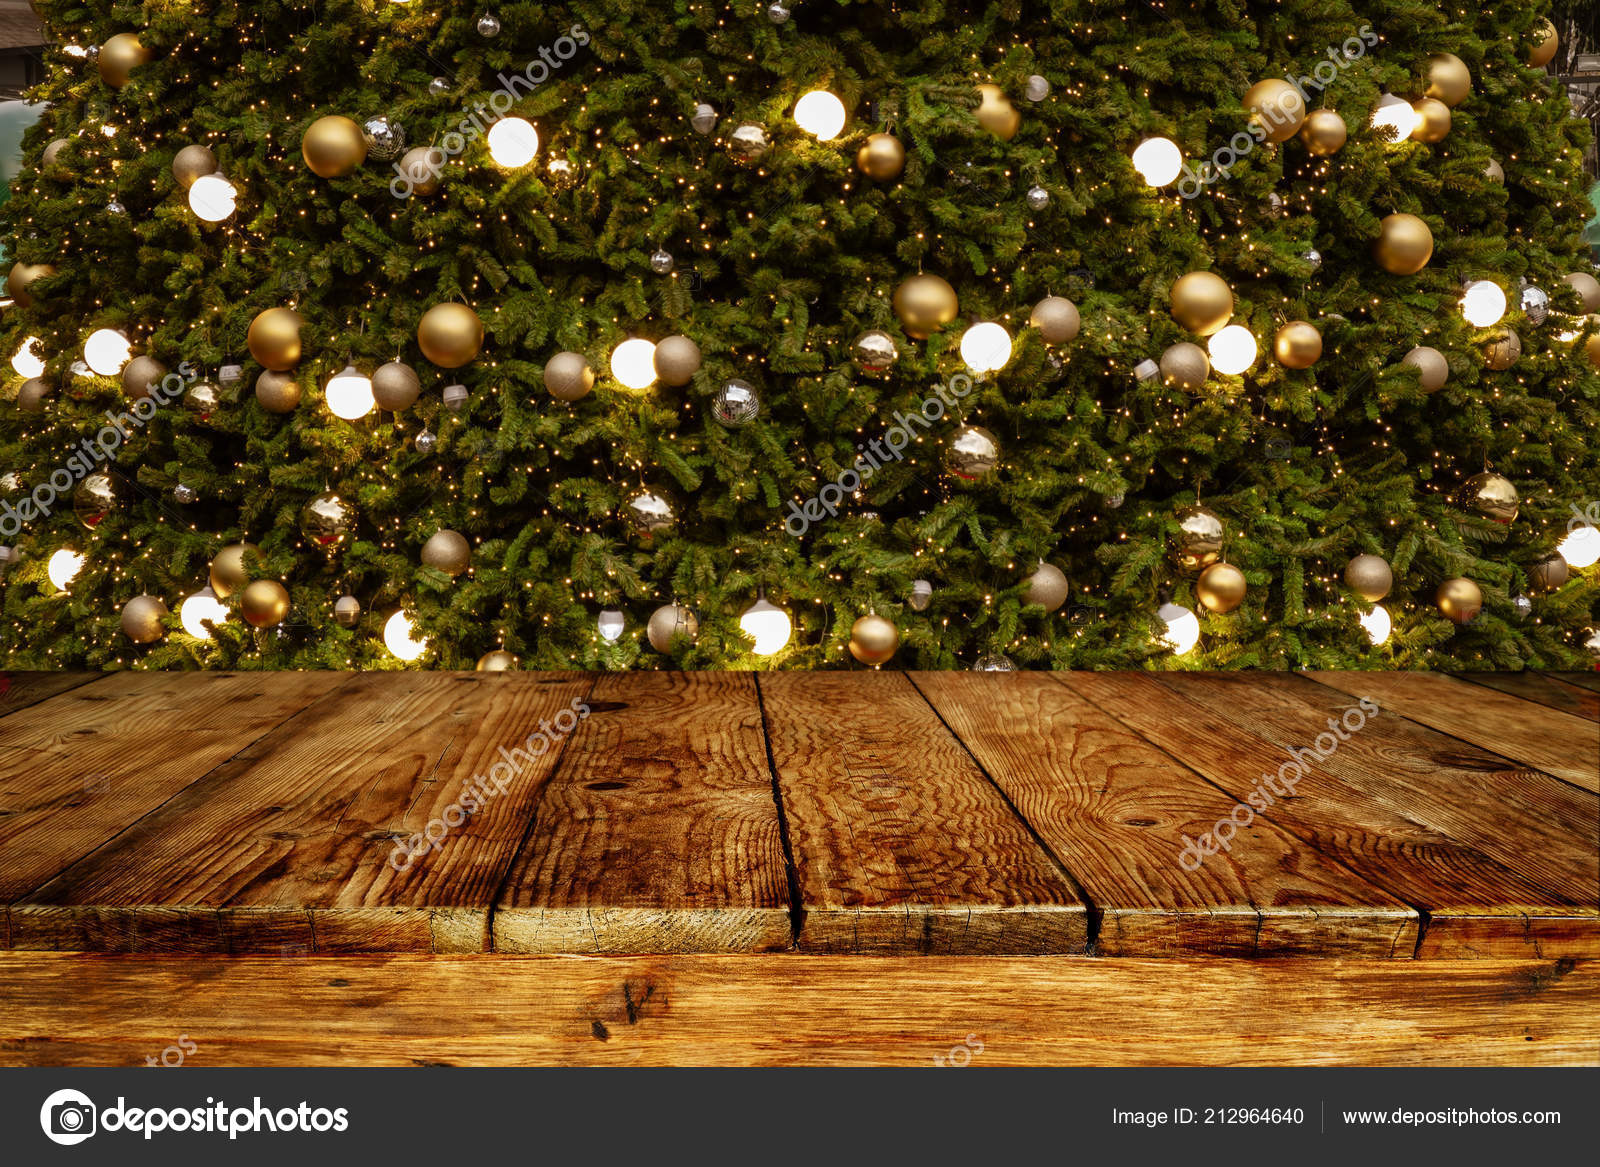 christmas and new year background with empty wooden deck table over blurred christmas tree at night empty display for product montage rustic scene